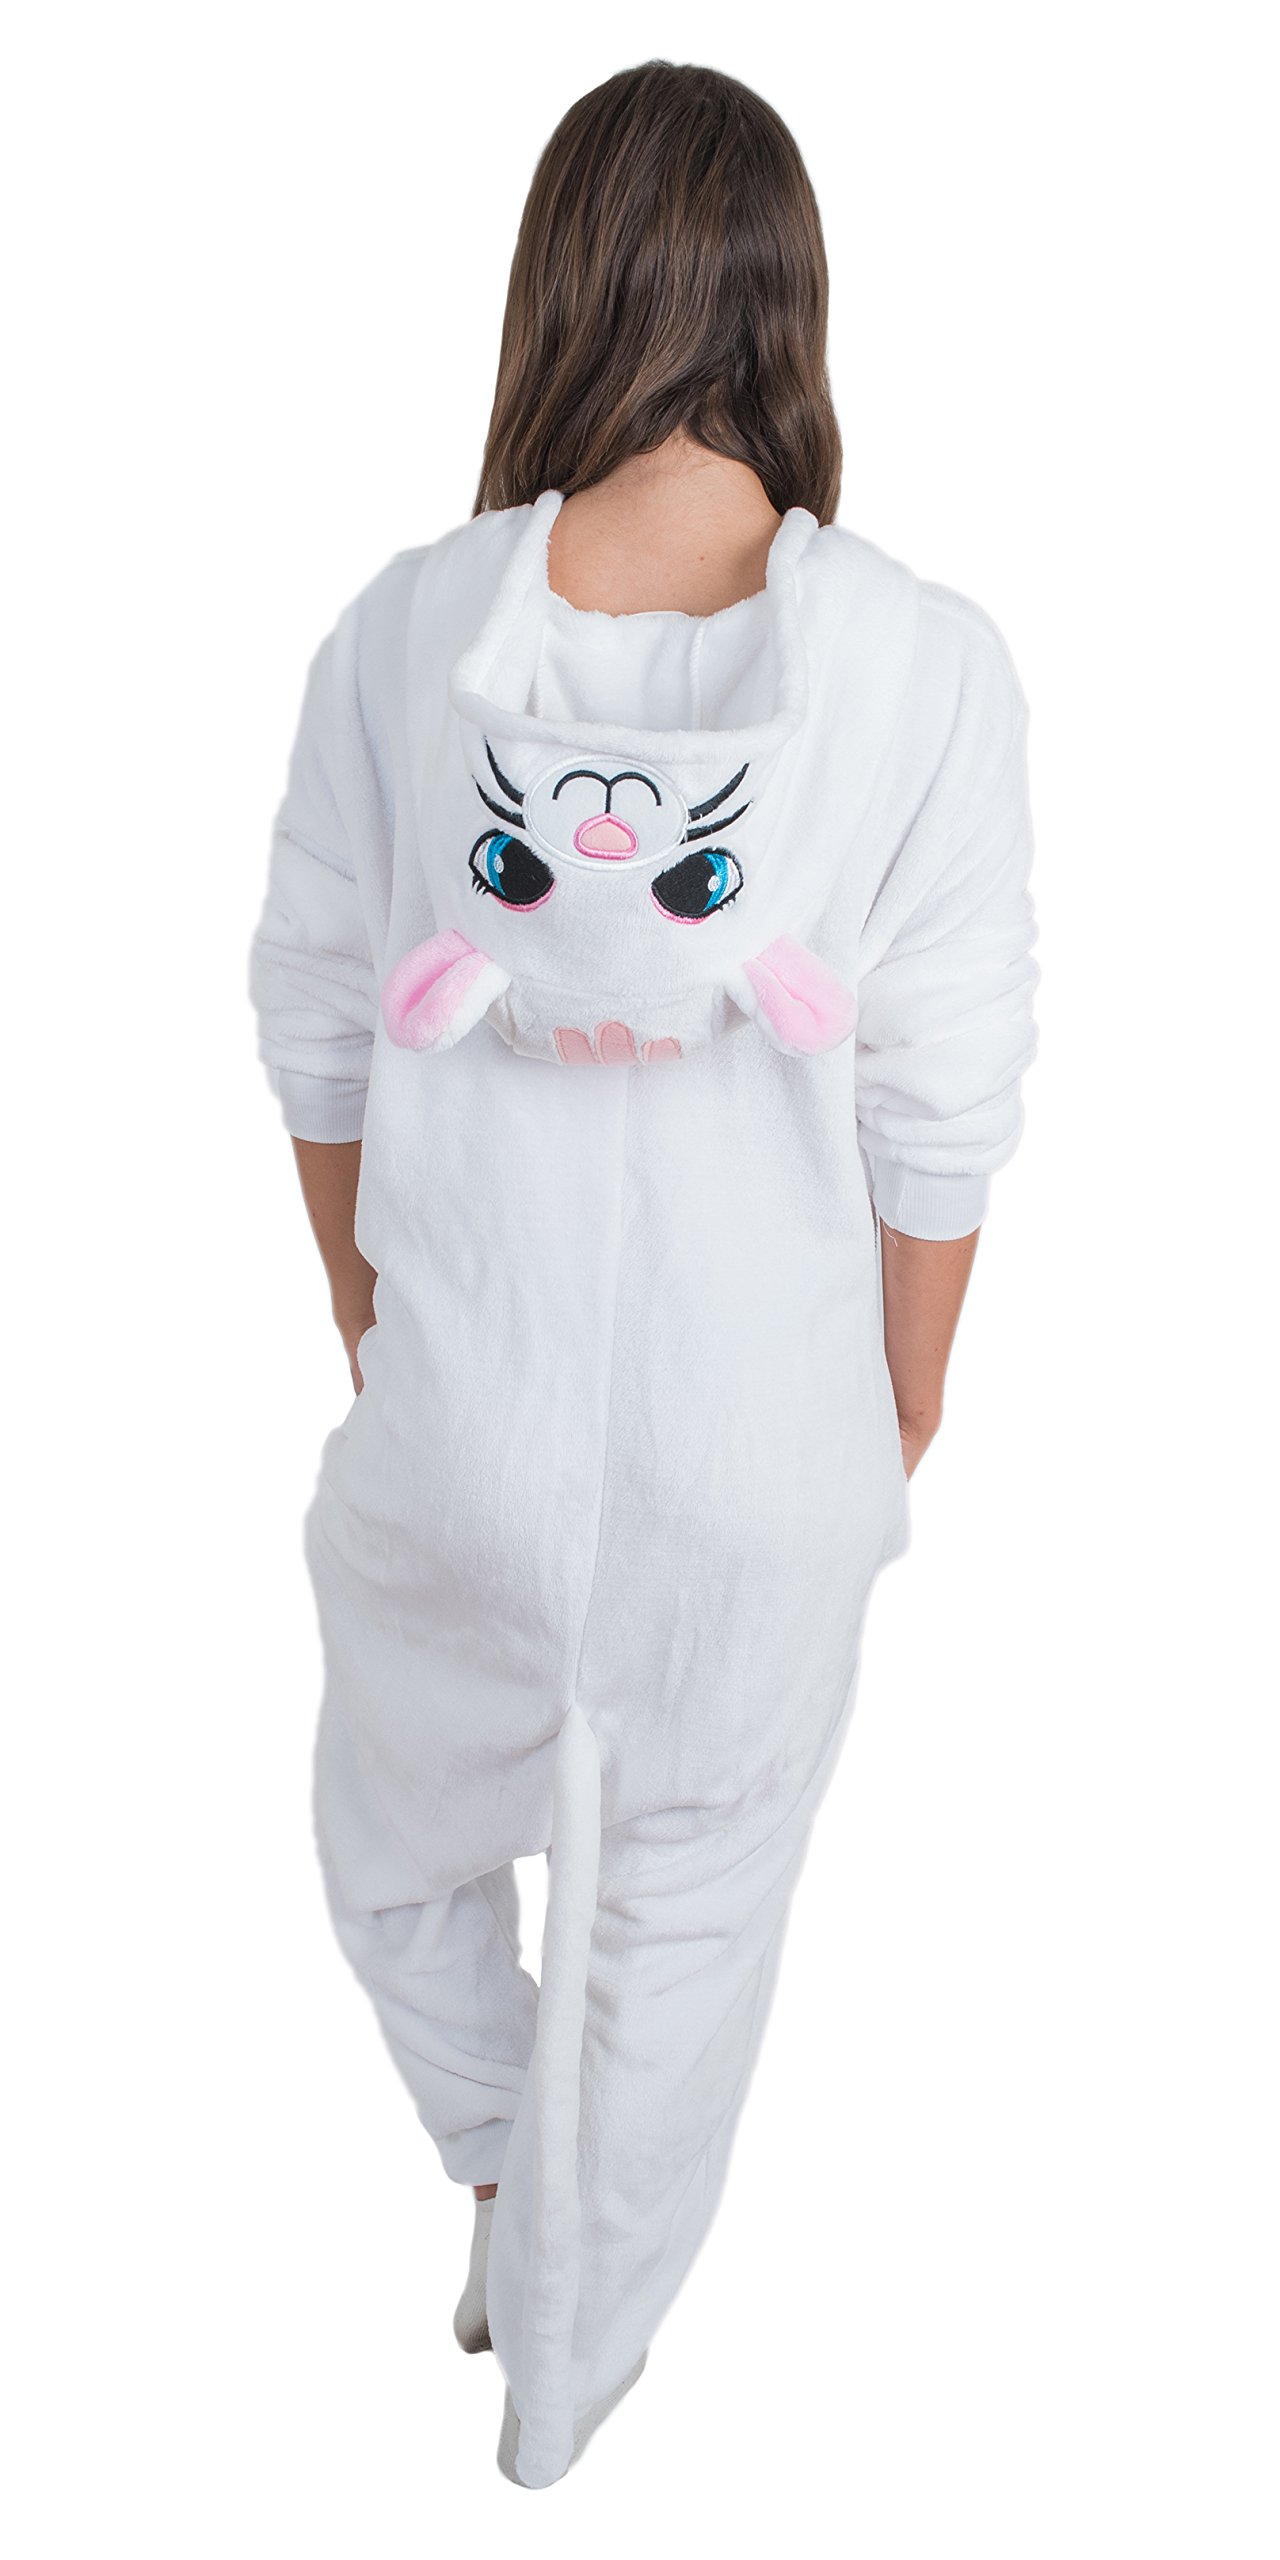 Bad Bear Brand Adult Onesie Cat Animal Pajamas Comfortable Costume With Zipper and Pockets (Small) by Bad Bear Brand (Image #5)